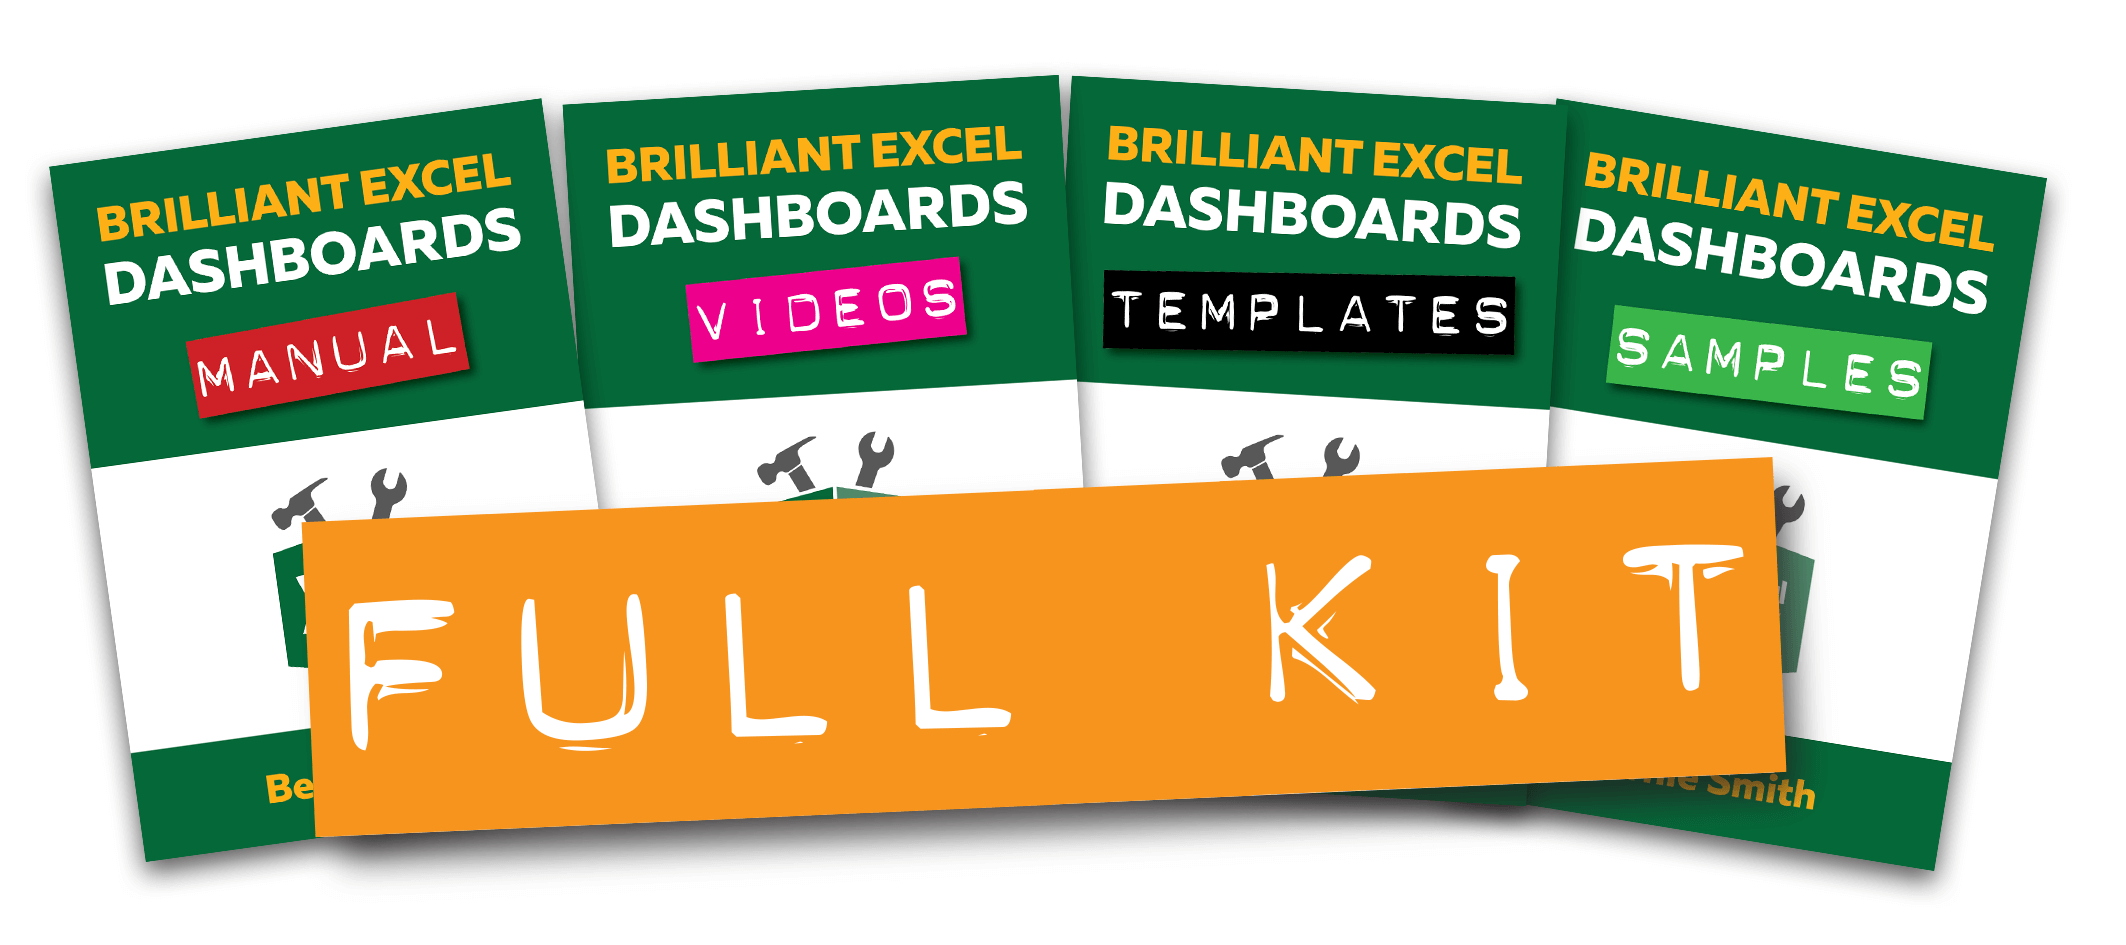 Full Brilliant Excel Dashboard Kit - Row Group - Crowded